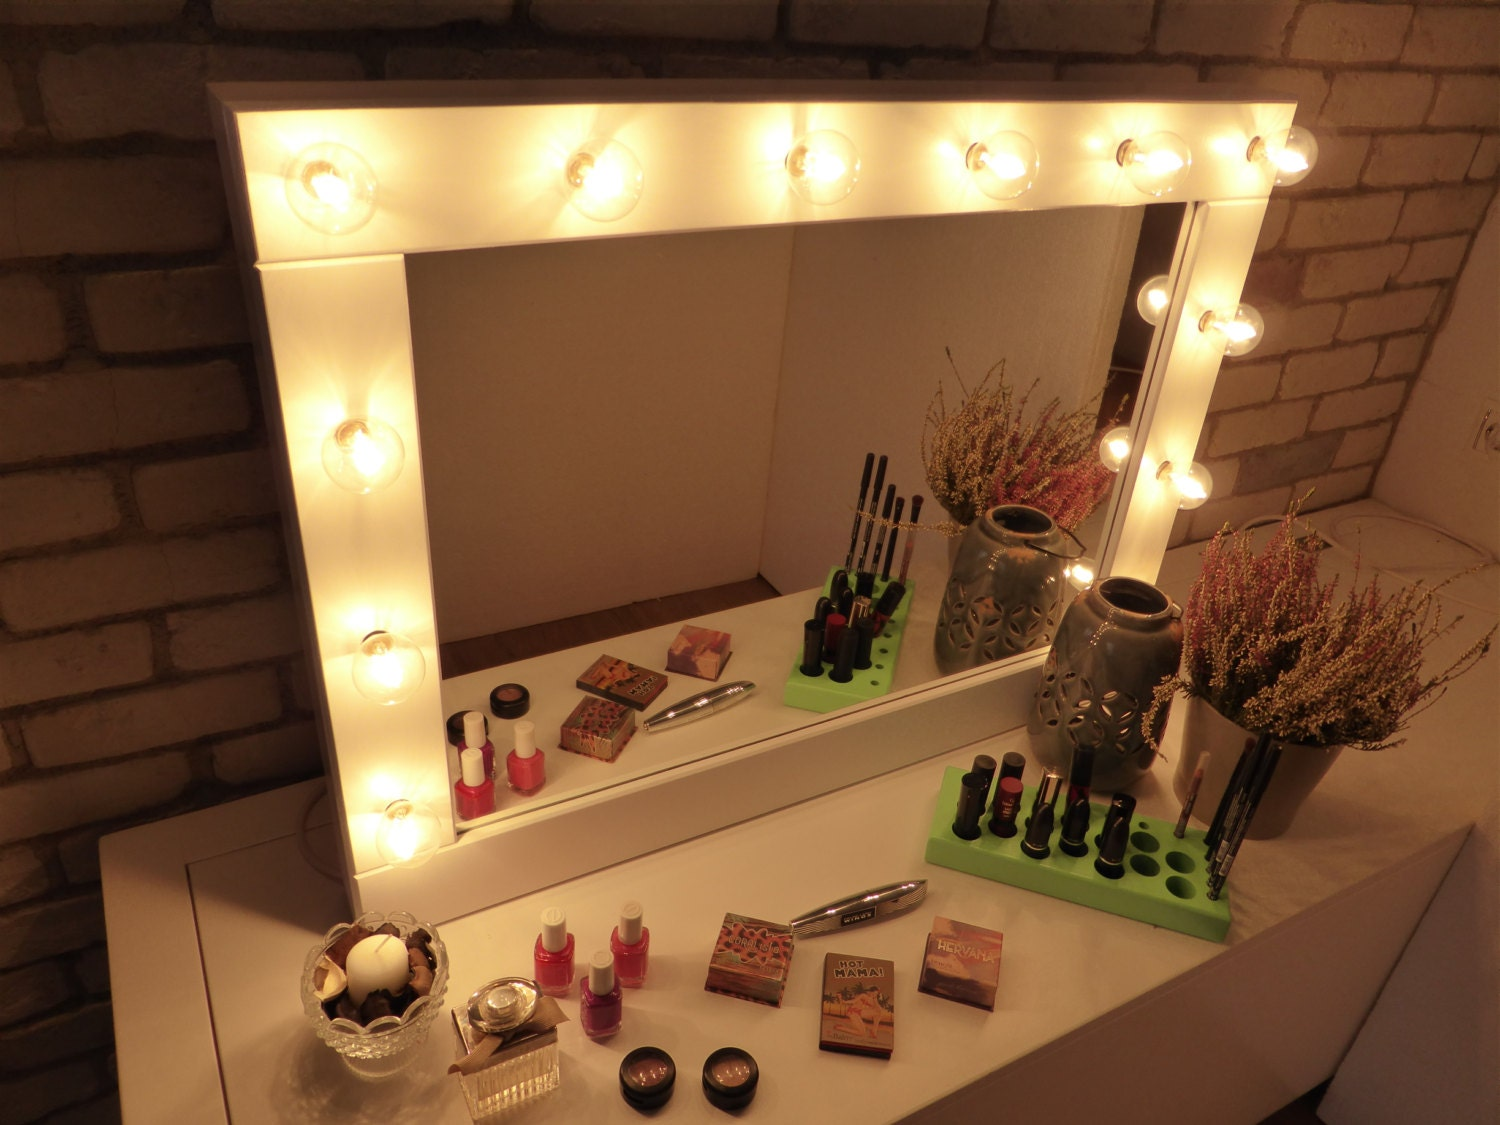 Vanity Mirror With Lights Hollywood Style : Make up Mirror with lights Vanity mirror by CraftersCalendar